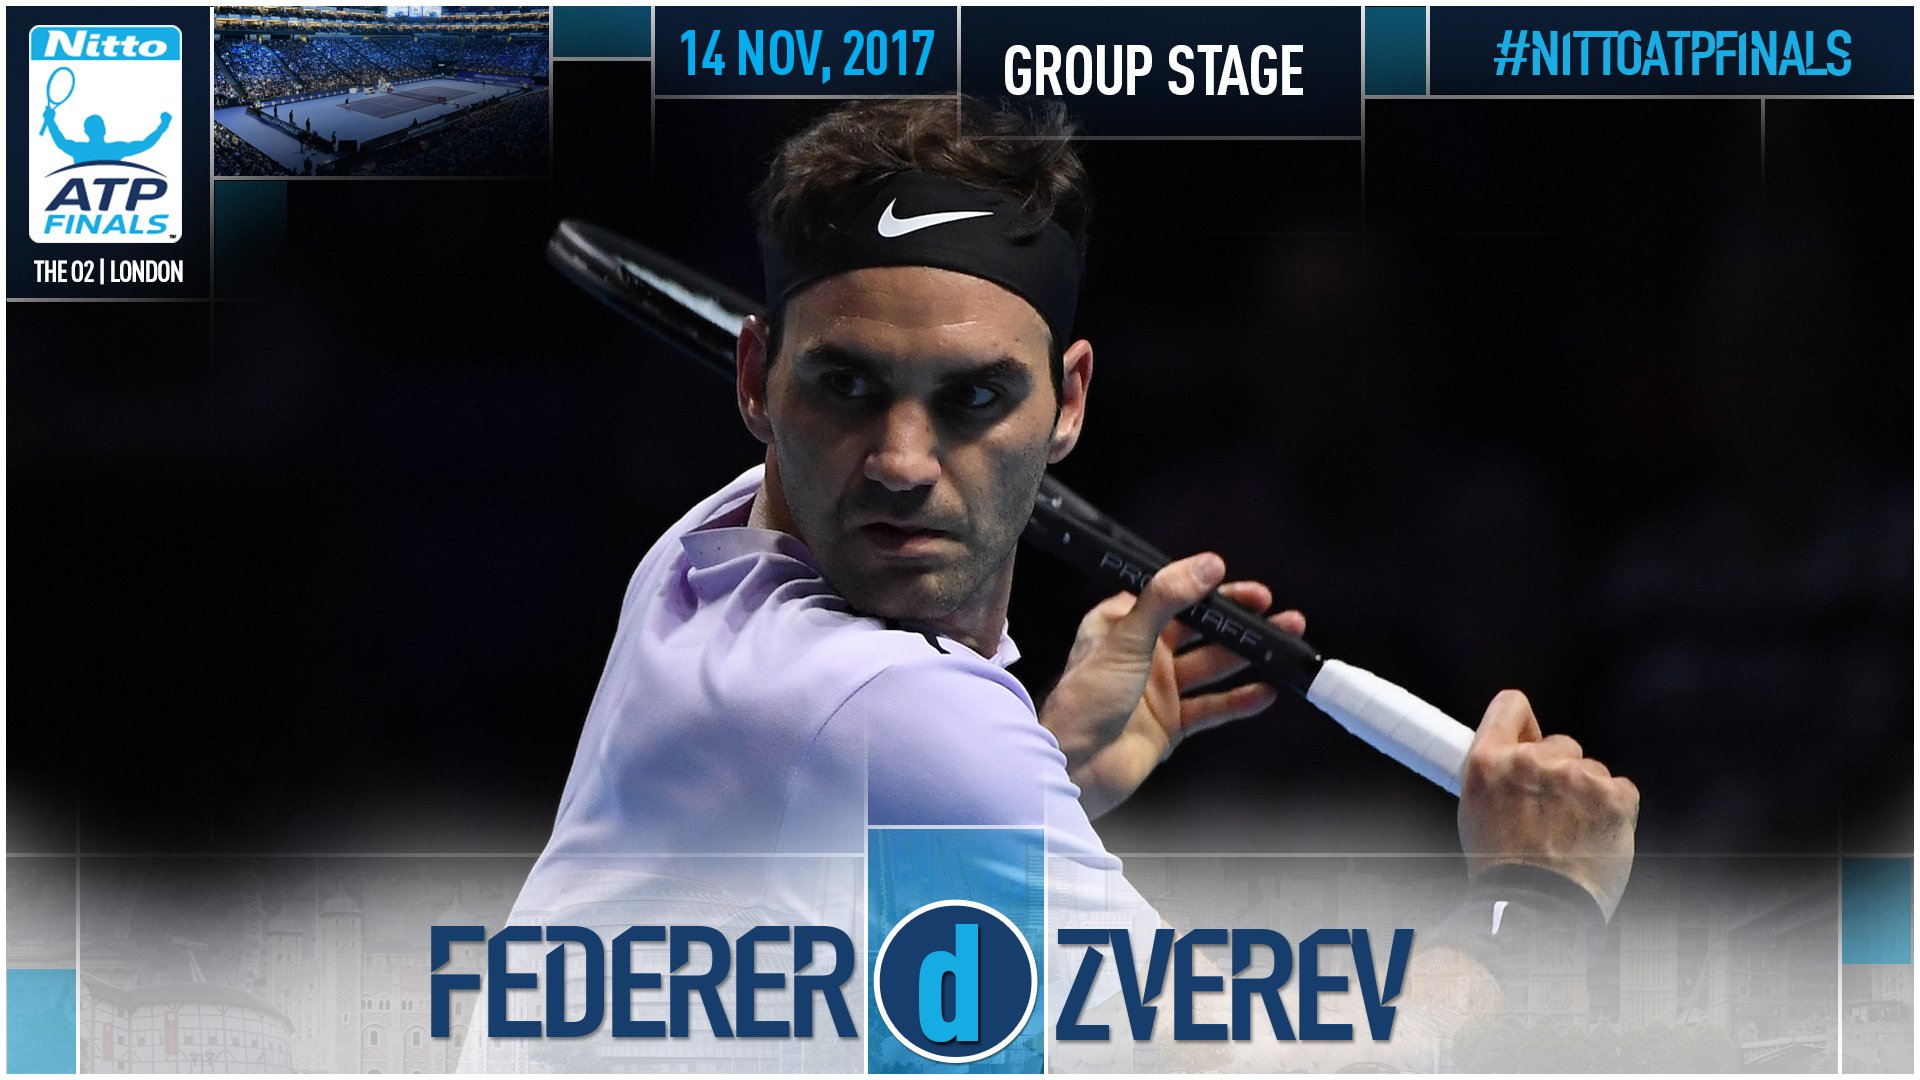 Federer is 1st into the #NittoATPFinals semi-finals after topping Zverev 7-6(6) 5-7 6-1 ➡️ https://t.co/0HcybAsv2l https://t.co/NjYcsEwcR3